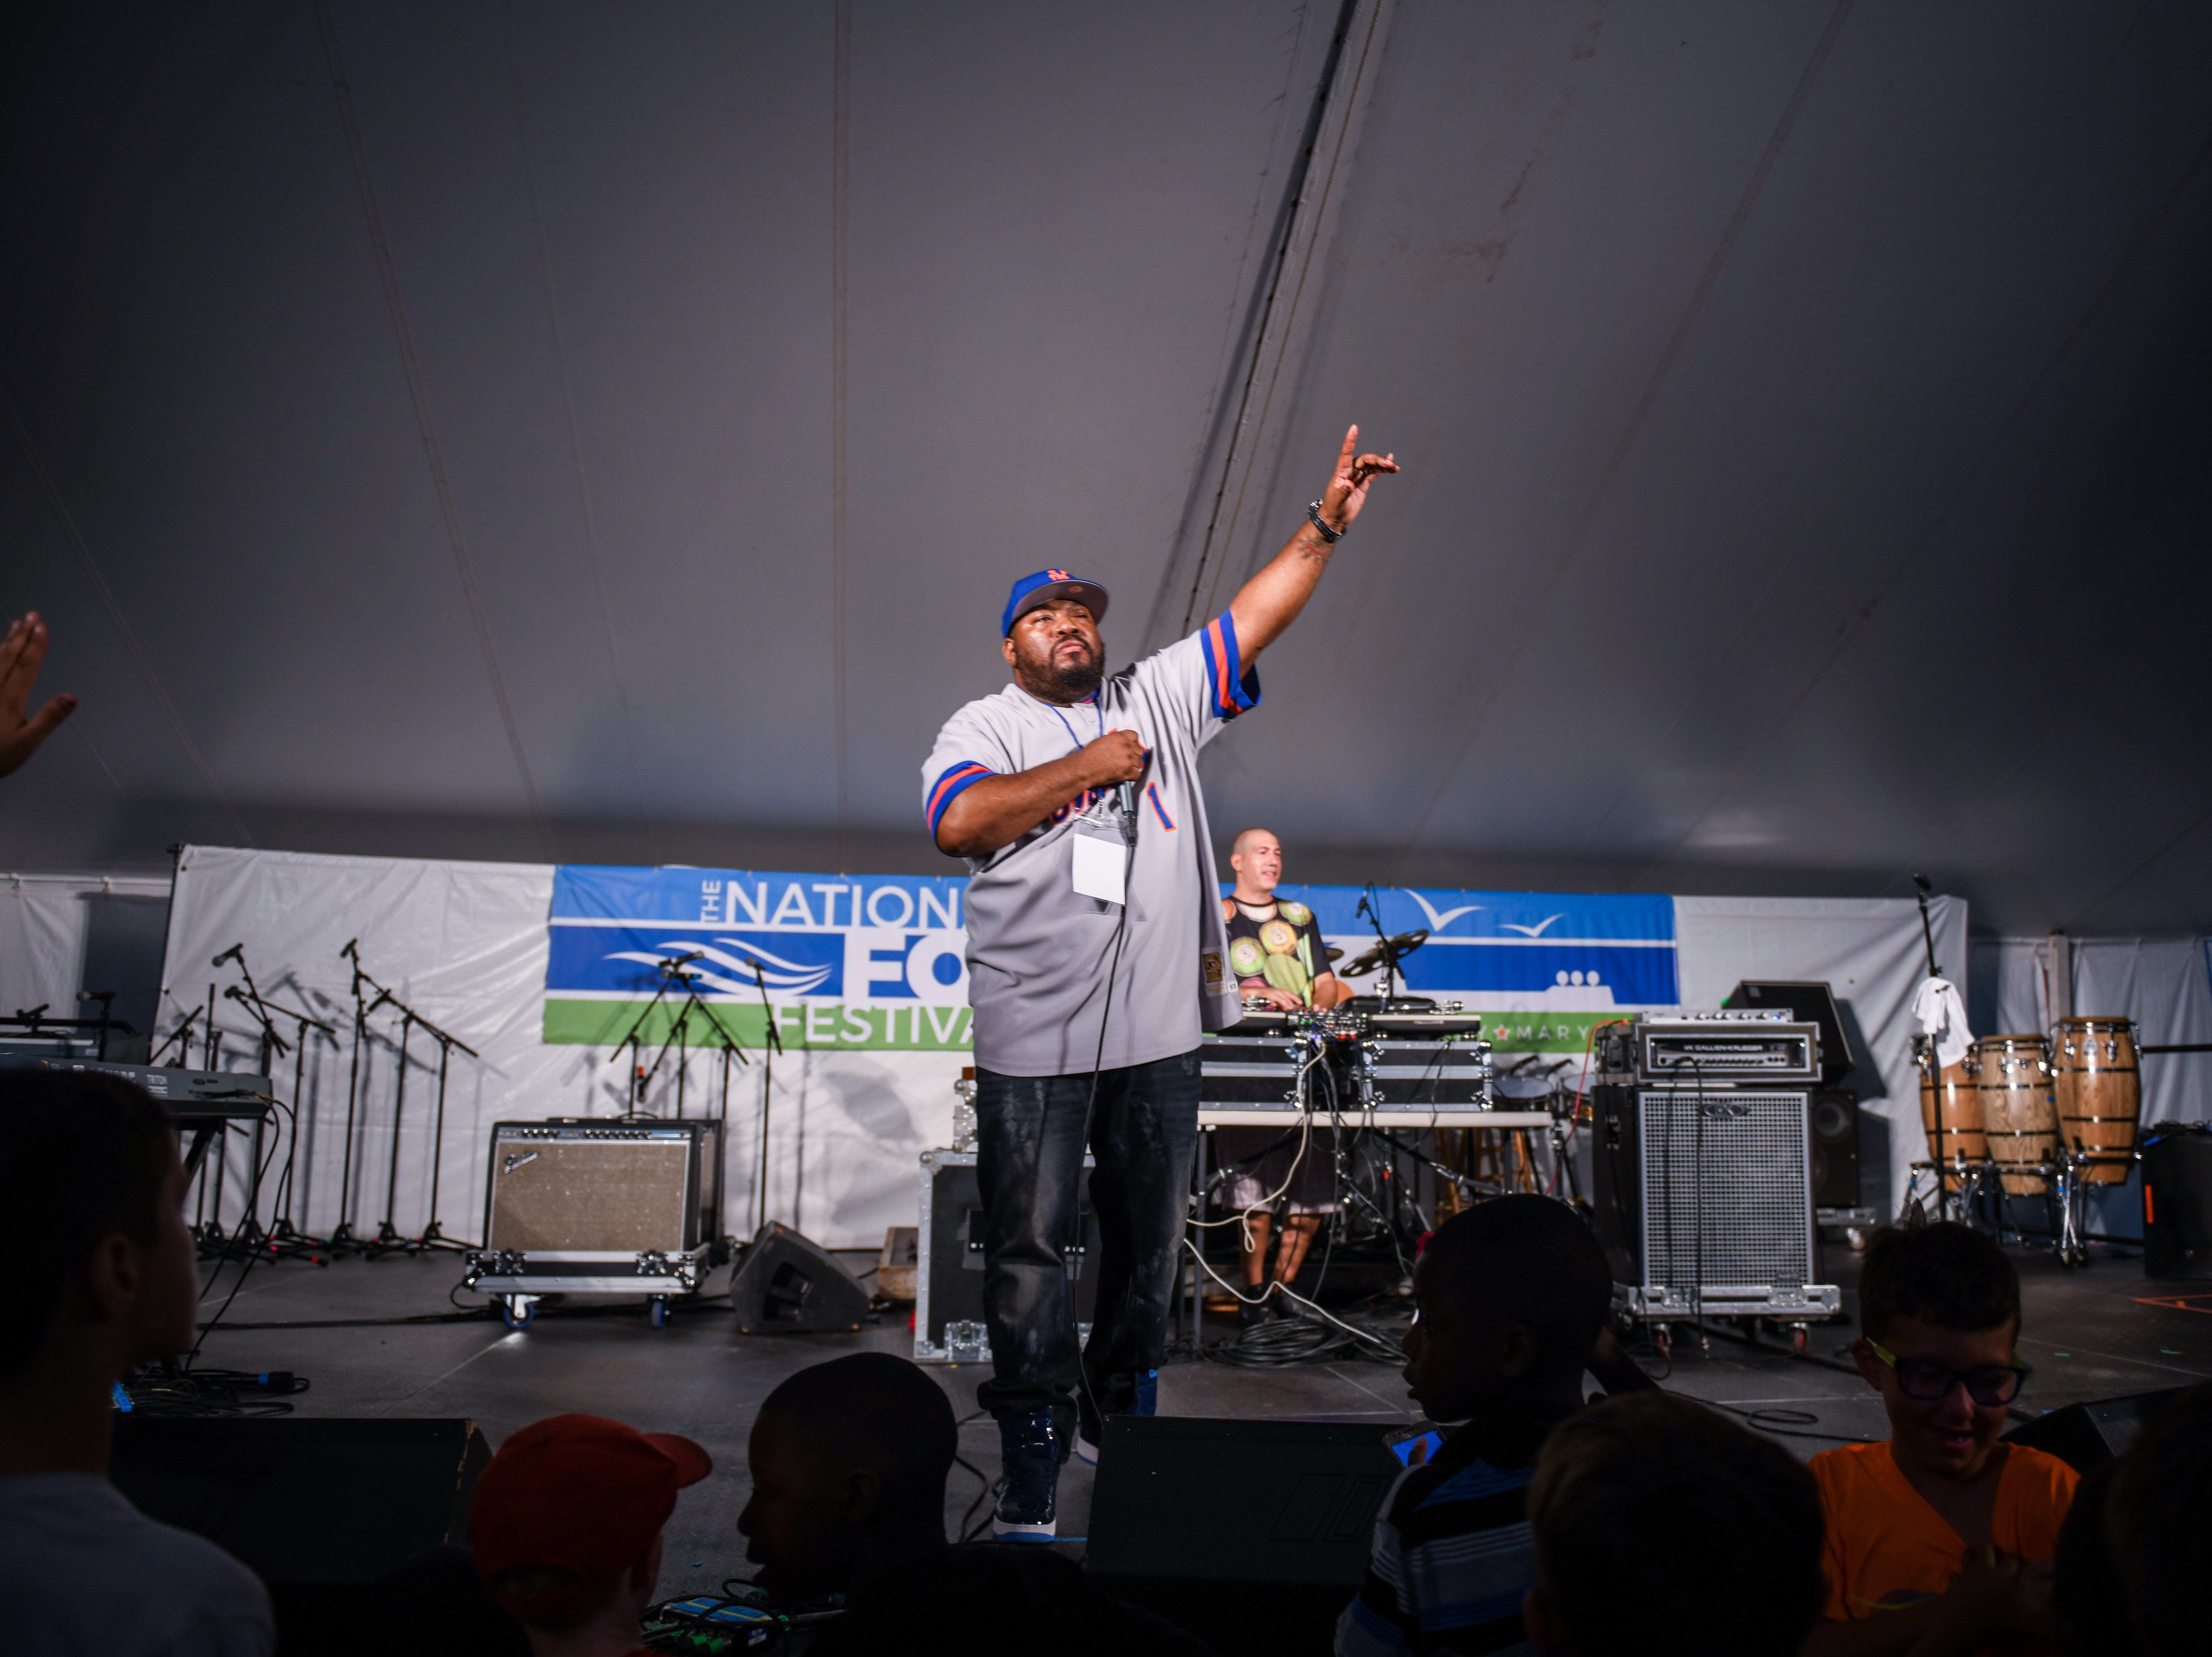 Rahzel performs at the National Folk Festival in Salisbury on Saturday, Sept. 8.